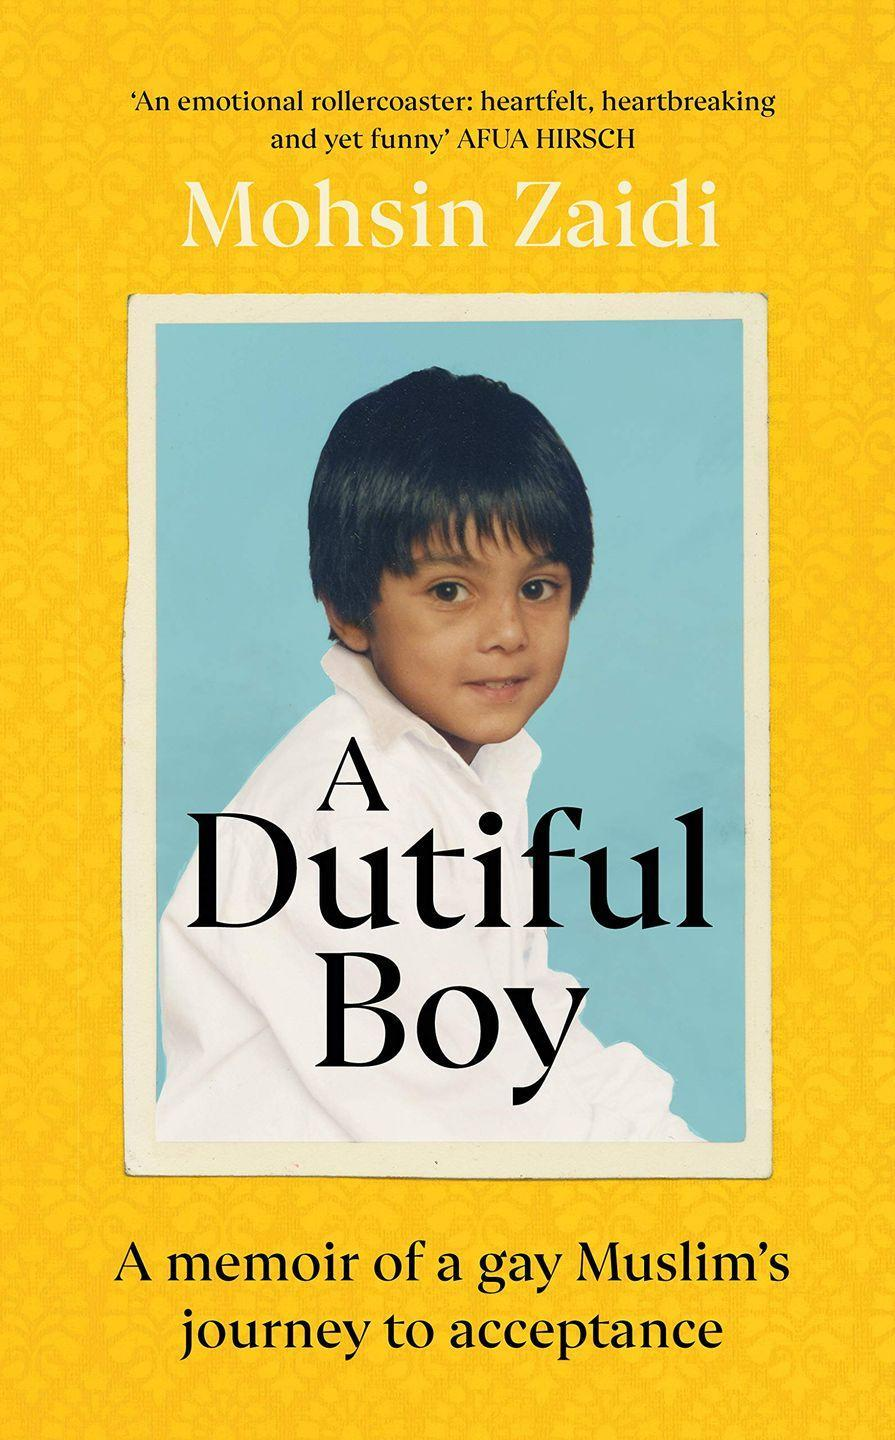 "<p>Mohsin's story takes harrowing turns yet it is full of life, laughter and most importantly, it is an inspiring story about breaking through life's barriers.</p><p><a class=""link rapid-noclick-resp"" href=""https://www.amazon.co.uk/Dutiful-Boy-Muslims-journey-acceptance/dp/1529110157?tag=hearstuk-yahoo-21&ascsubtag=%5Bartid%7C1921.g.32141605%5Bsrc%7Cyahoo-uk"" rel=""nofollow noopener"" target=""_blank"" data-ylk=""slk:SHOP NOW"">SHOP NOW</a></p>"